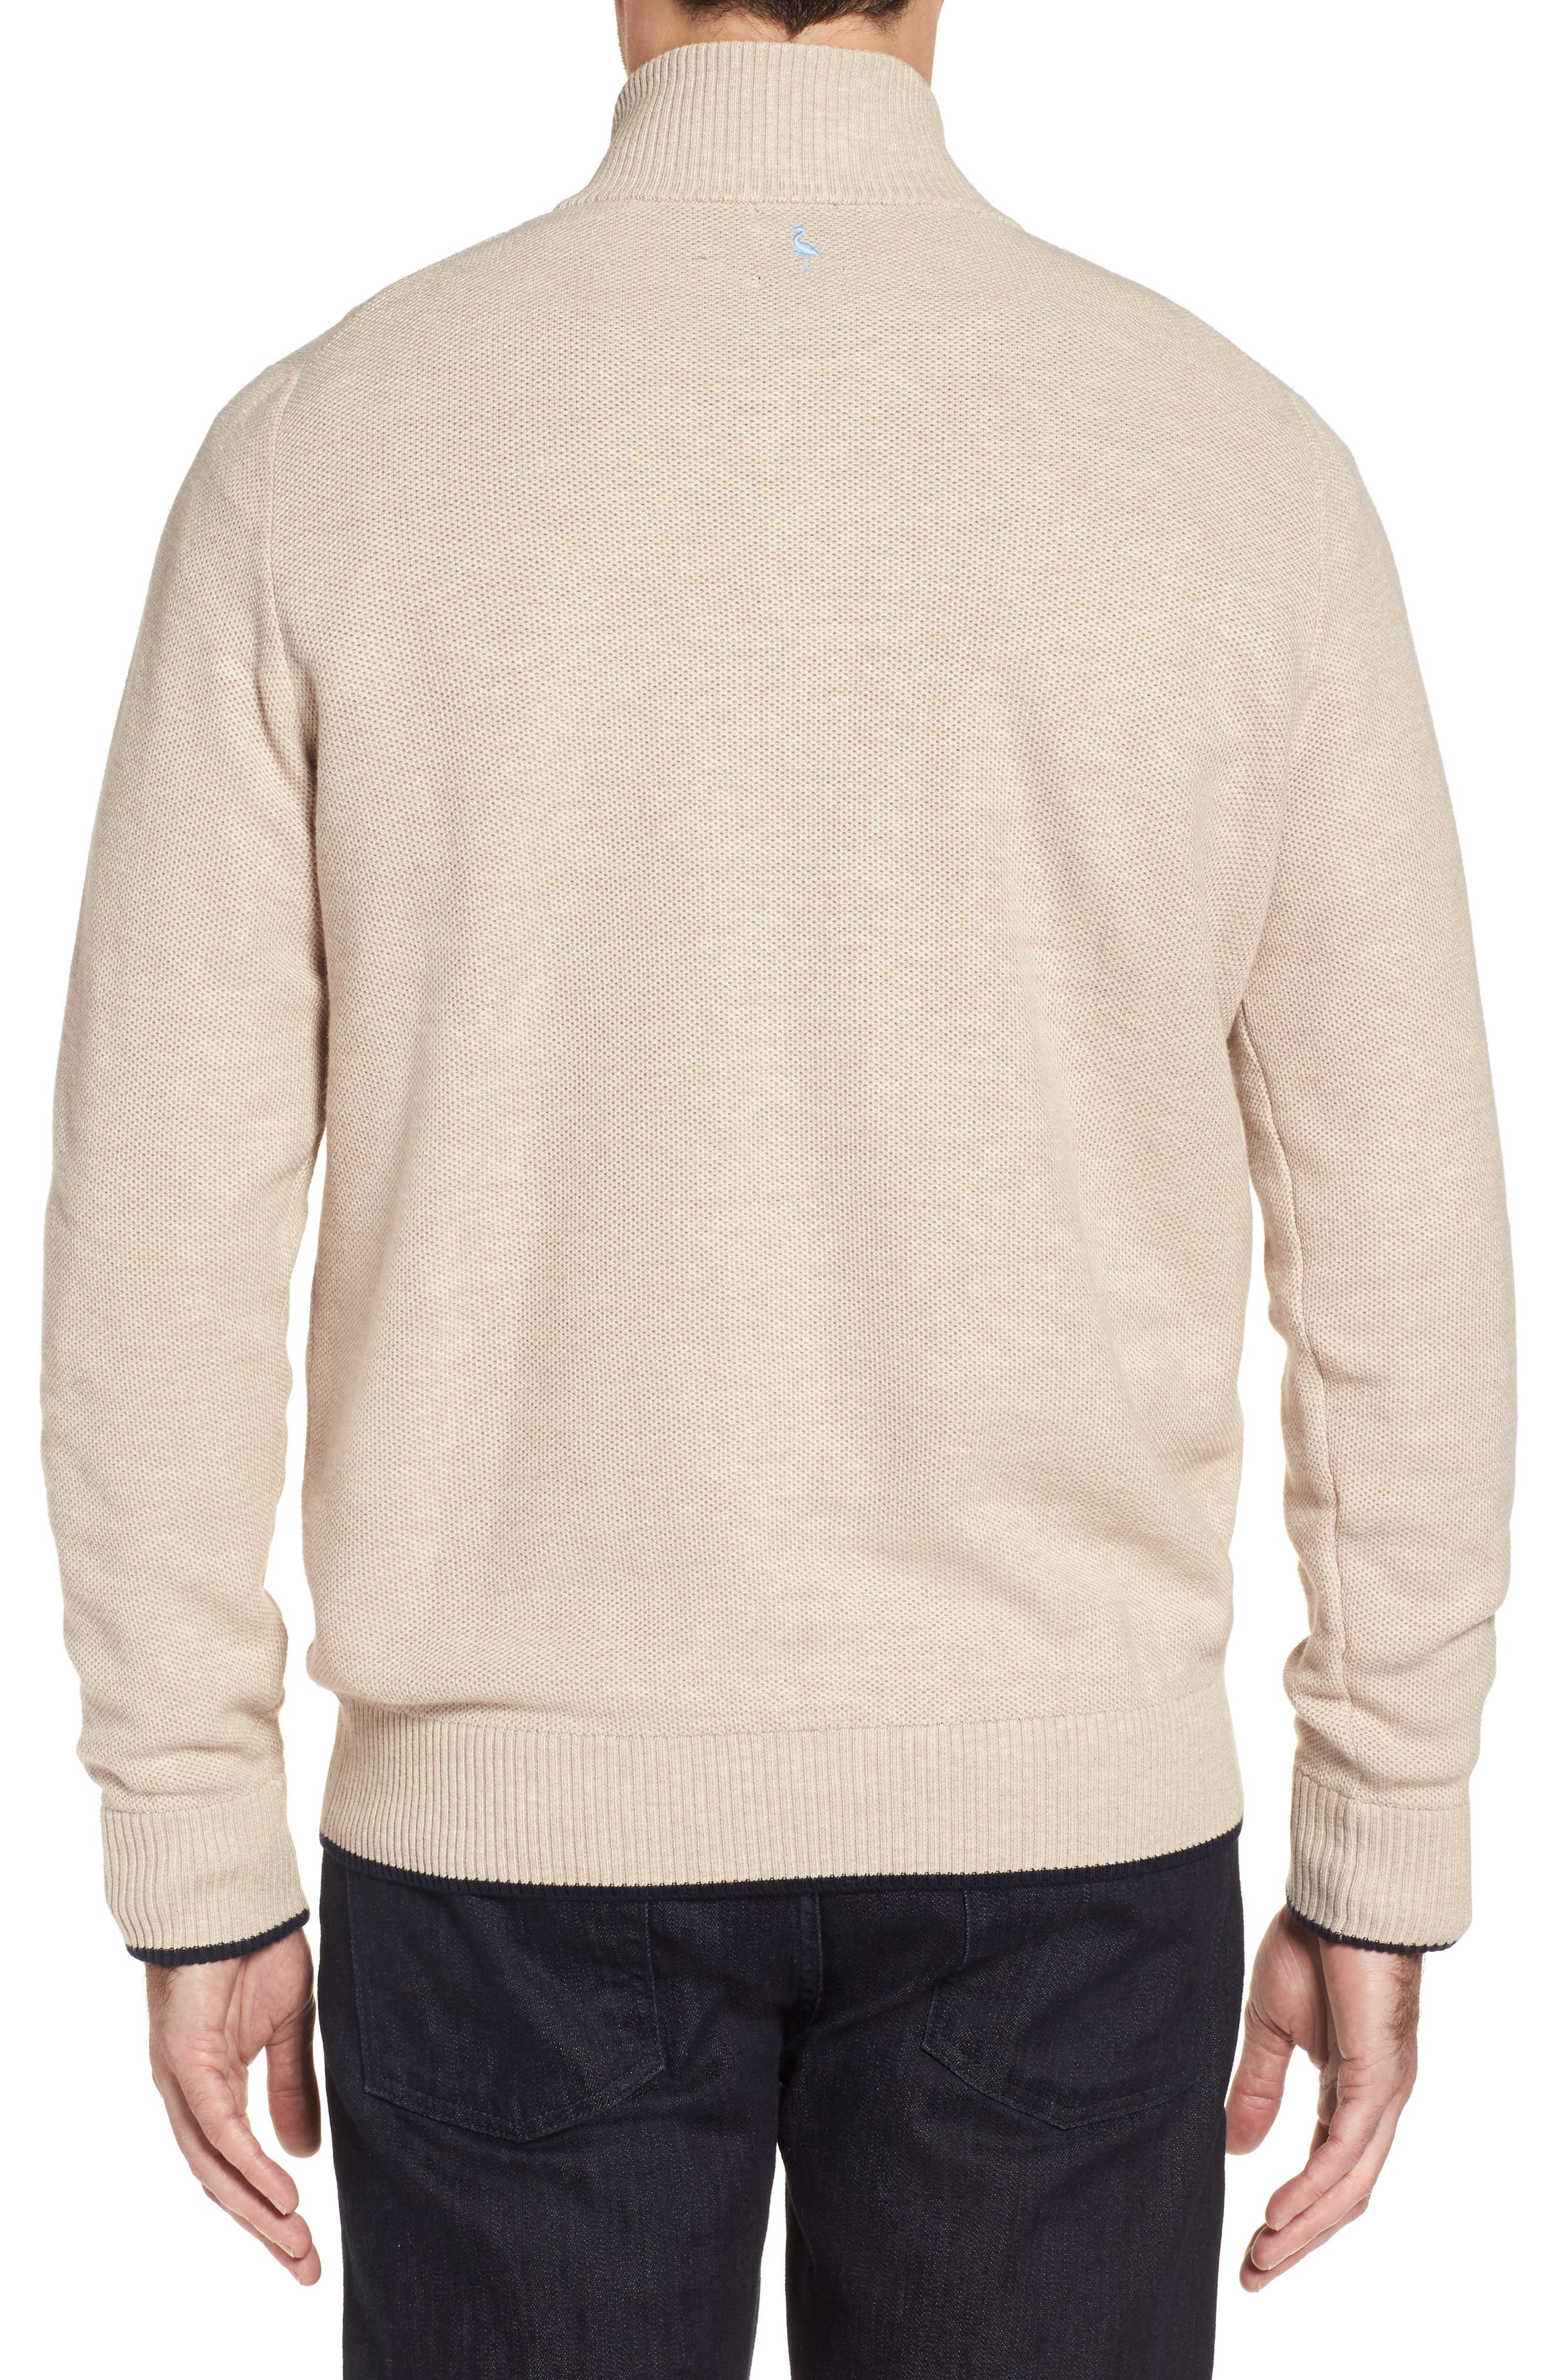 Sikes Tipped Quarter Zip Sweater,                             Alternate thumbnail 2, color,